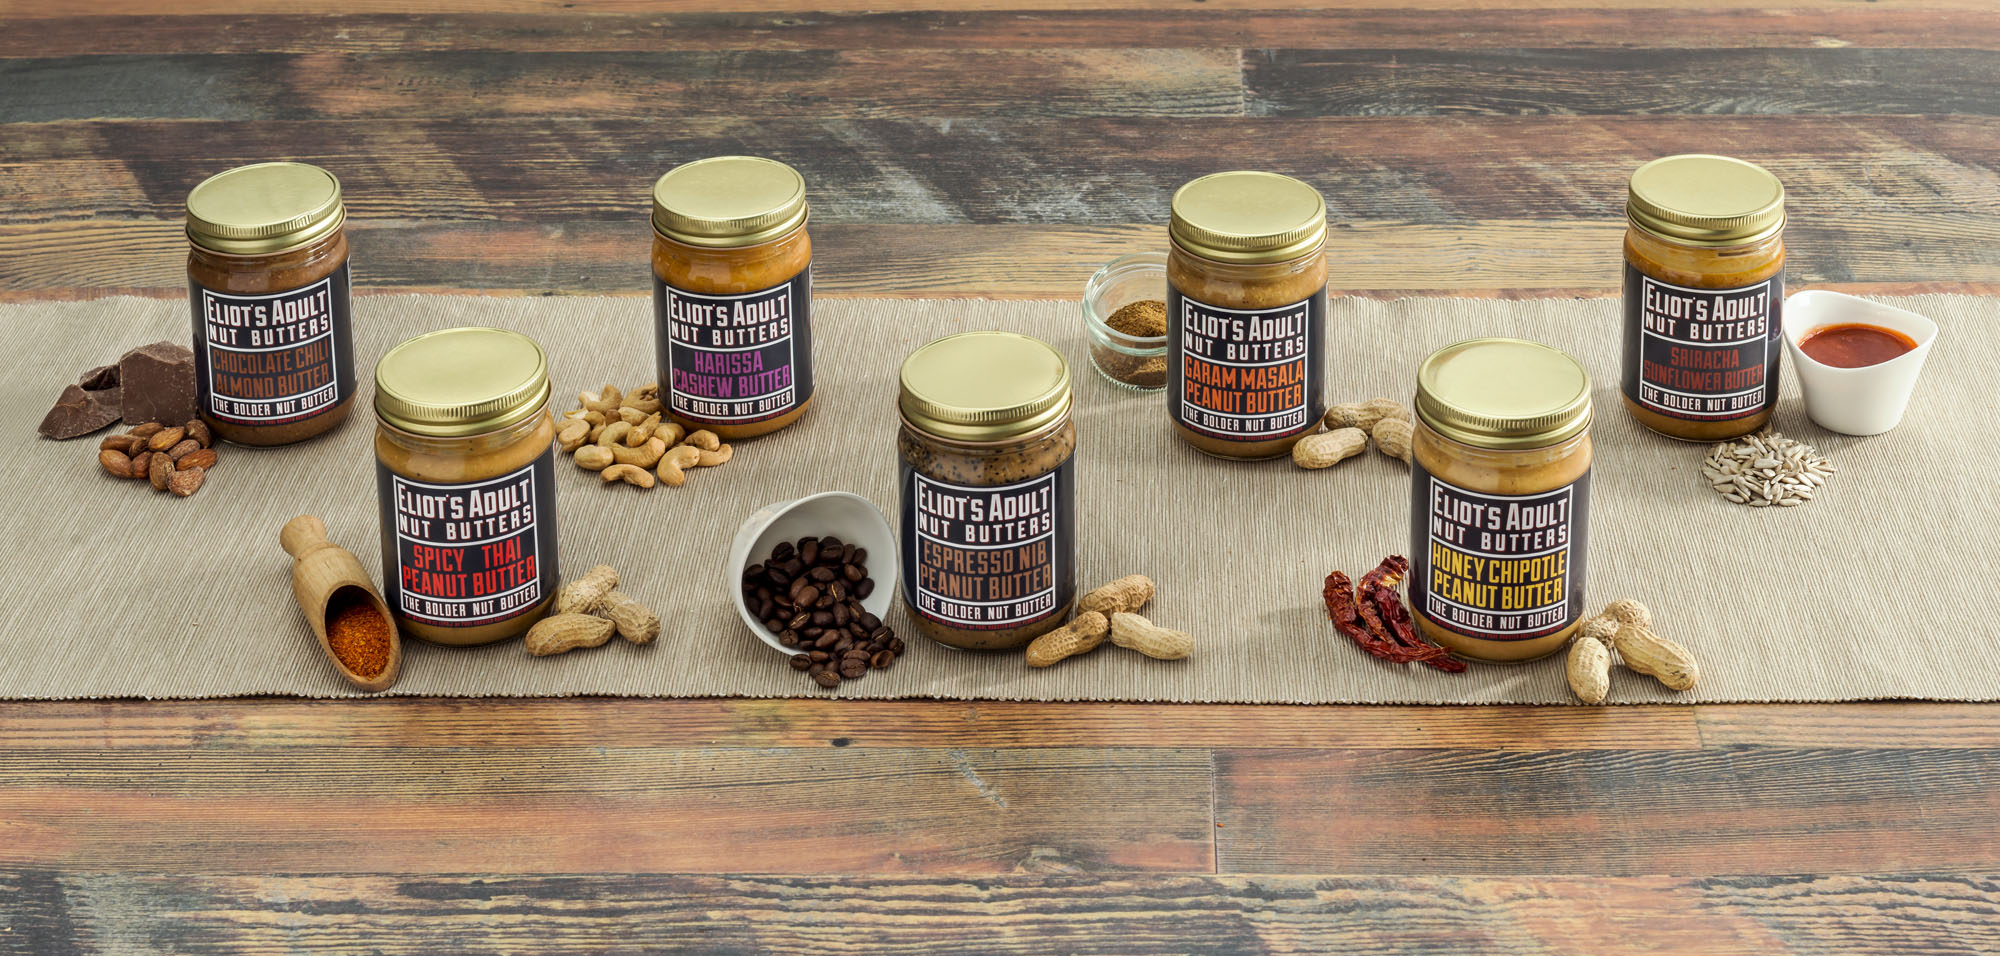 Eliot's Aoult Nut Butter_product photography_food shots_PENCIL ONE